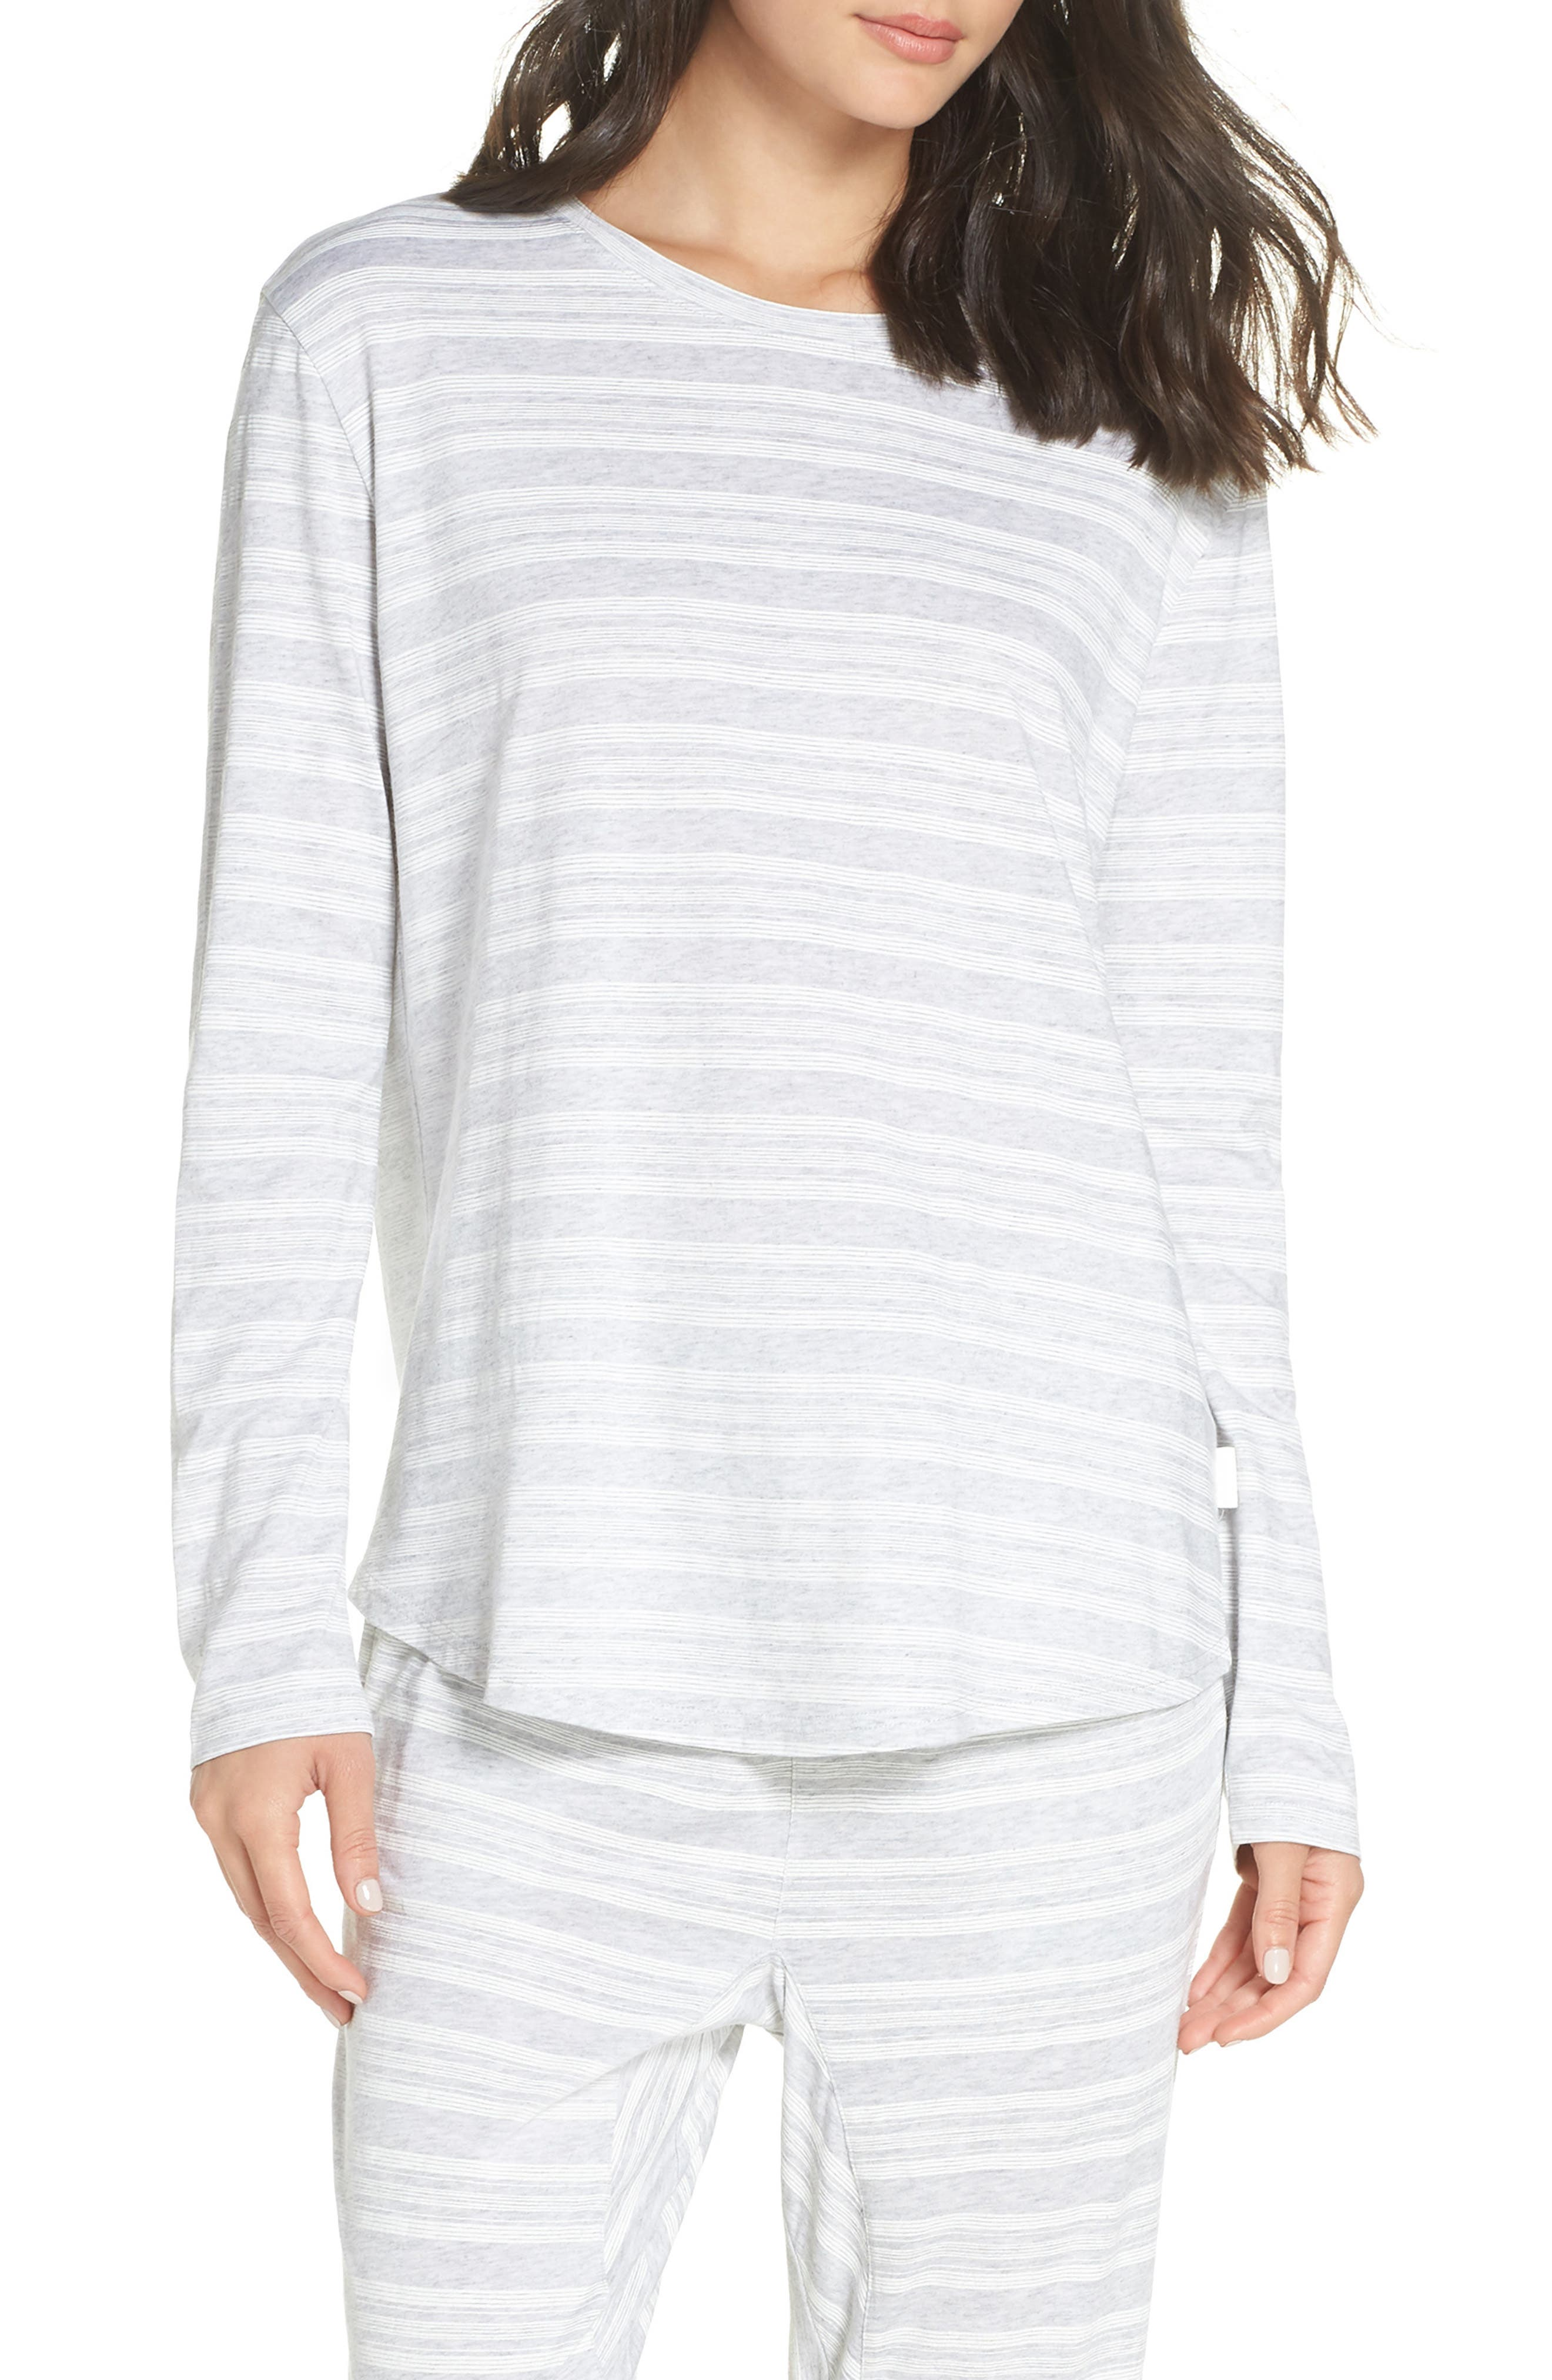 CHALMERS Issy Pajama Top, Main, color, LOLLY STRIPE WHITE